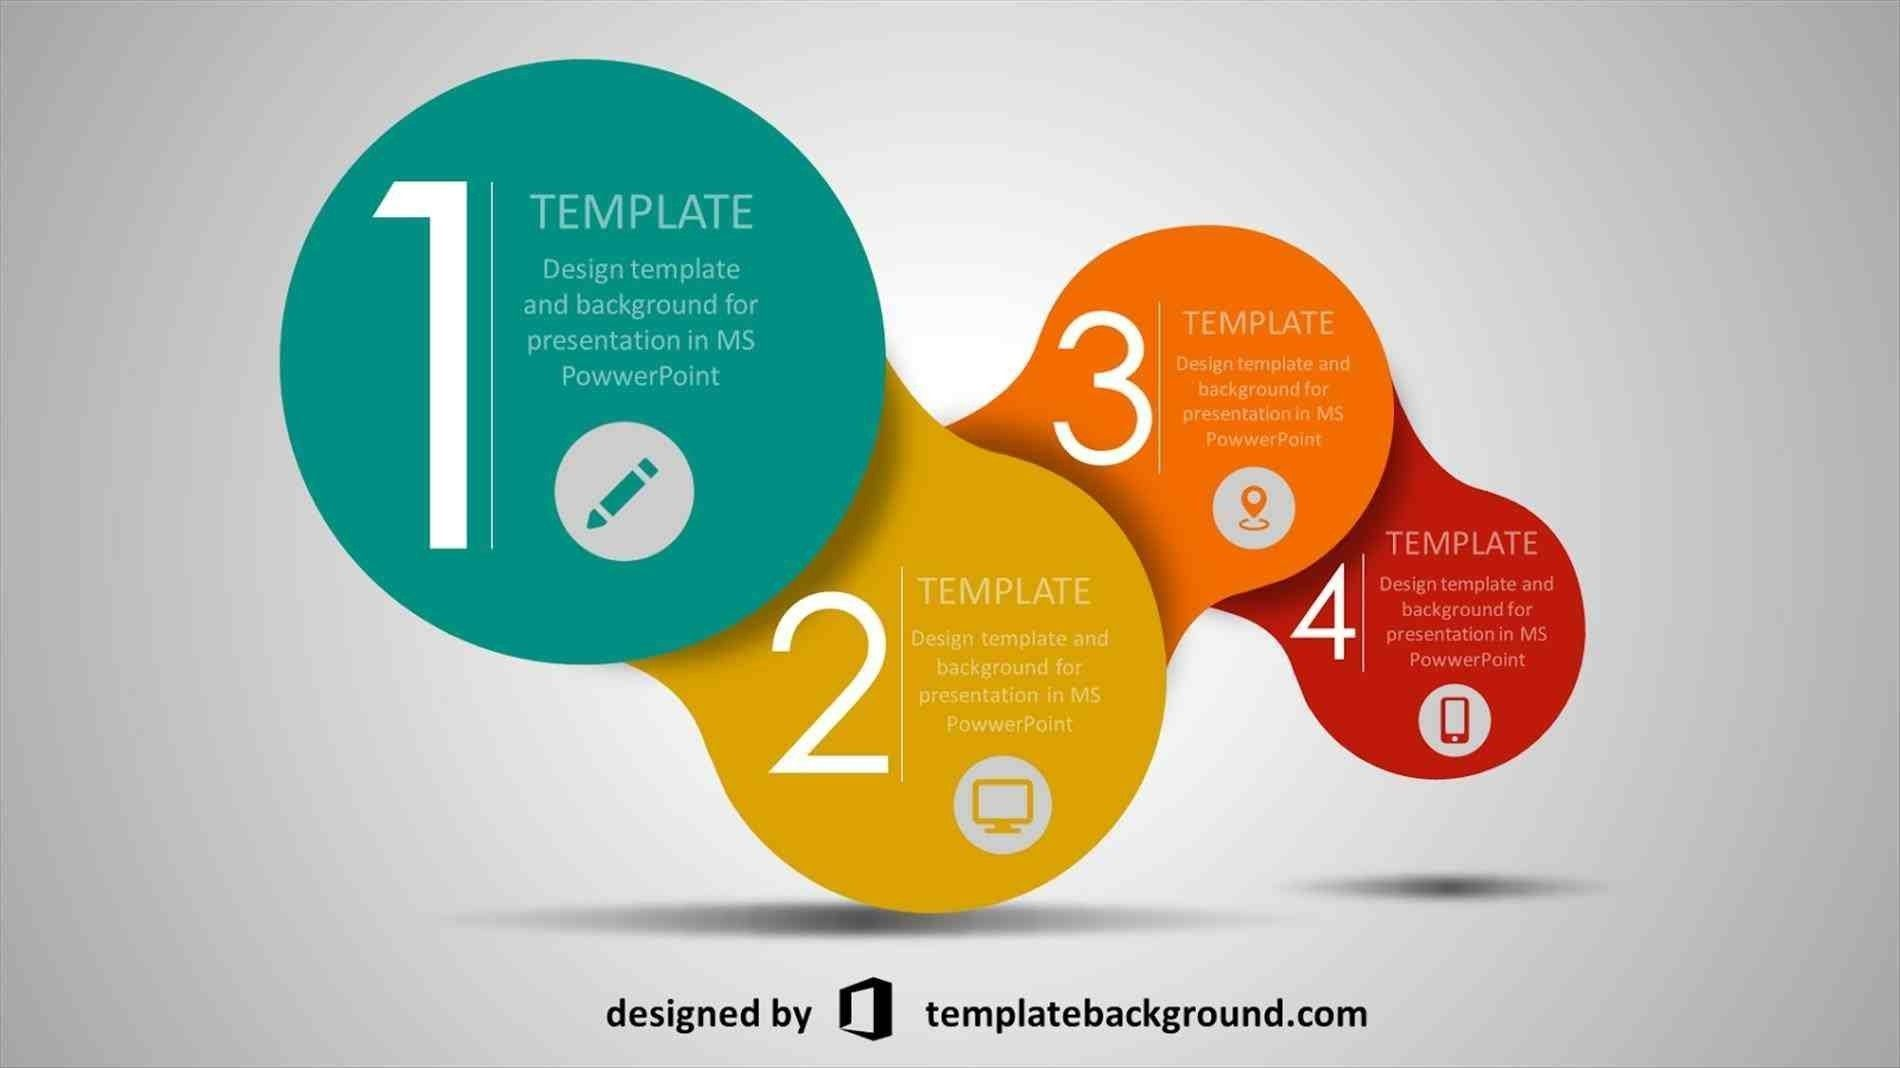 Powerpoint Templates For Research Papers Free Download Ppt For Powerpoint Presentation Presentation Template Free Powerpoint Template Free Powerpoint Animation